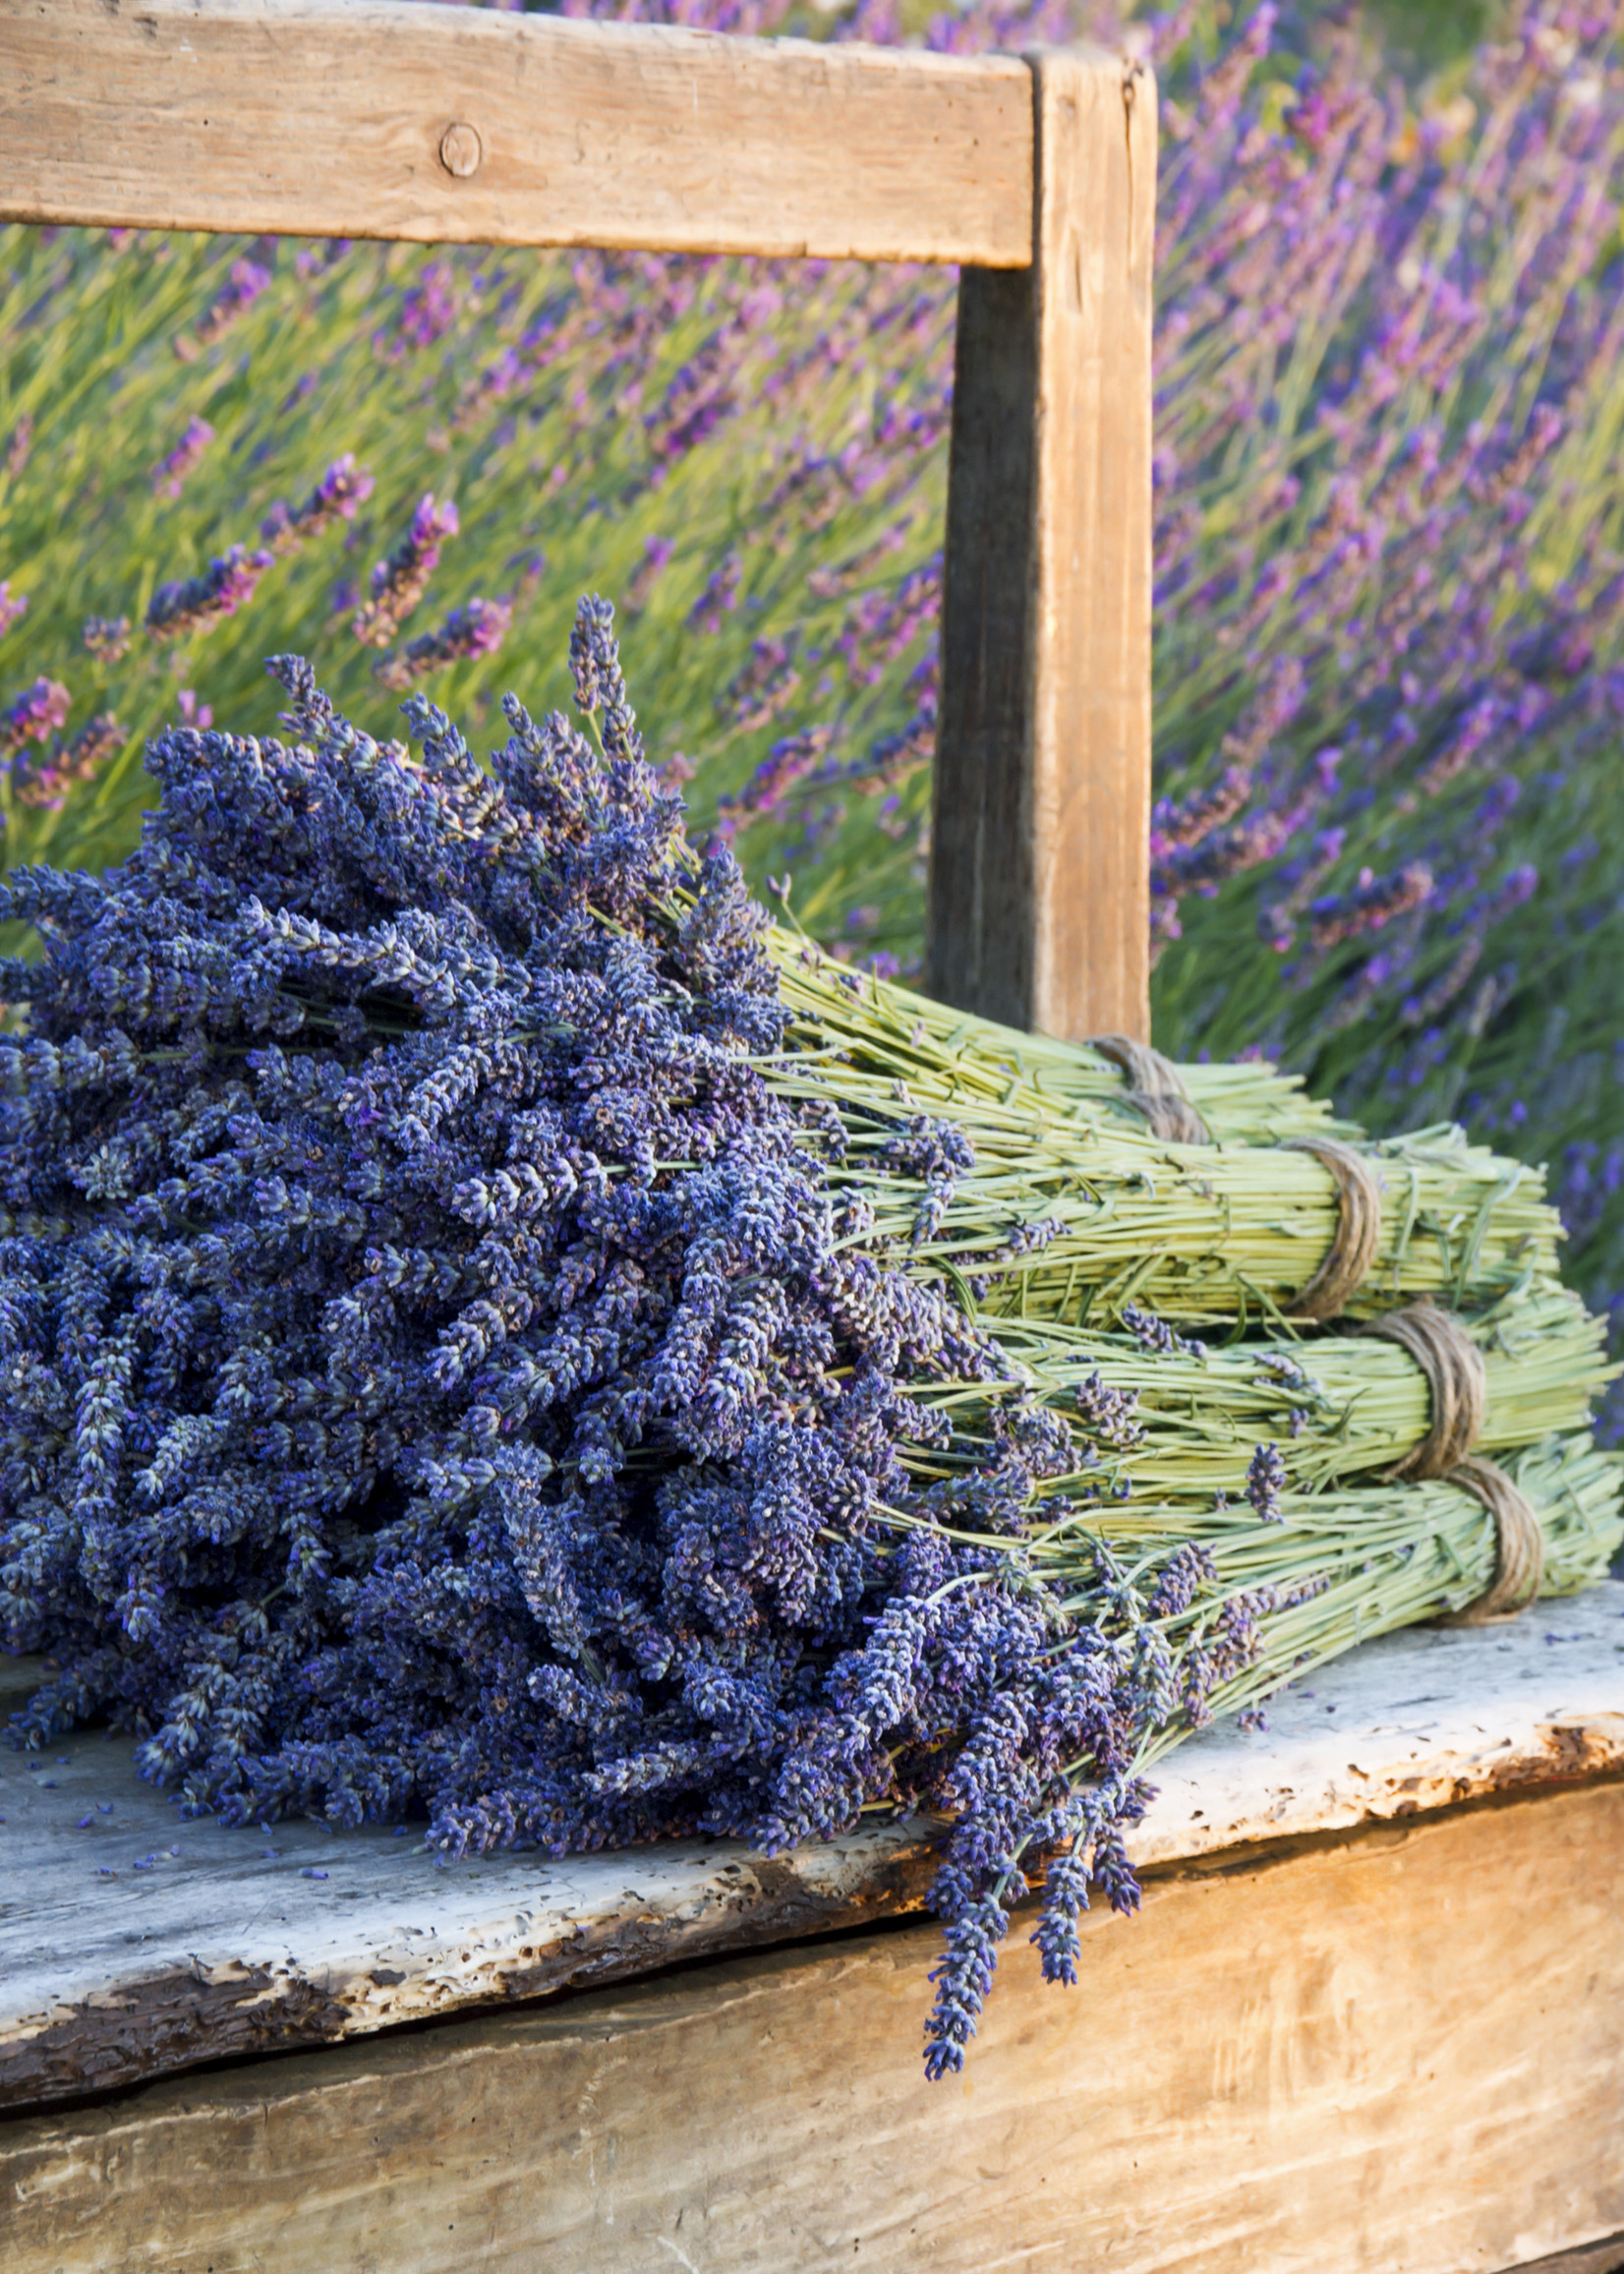 OFFER - 2 bunches of Lavender 100 grams per bunch